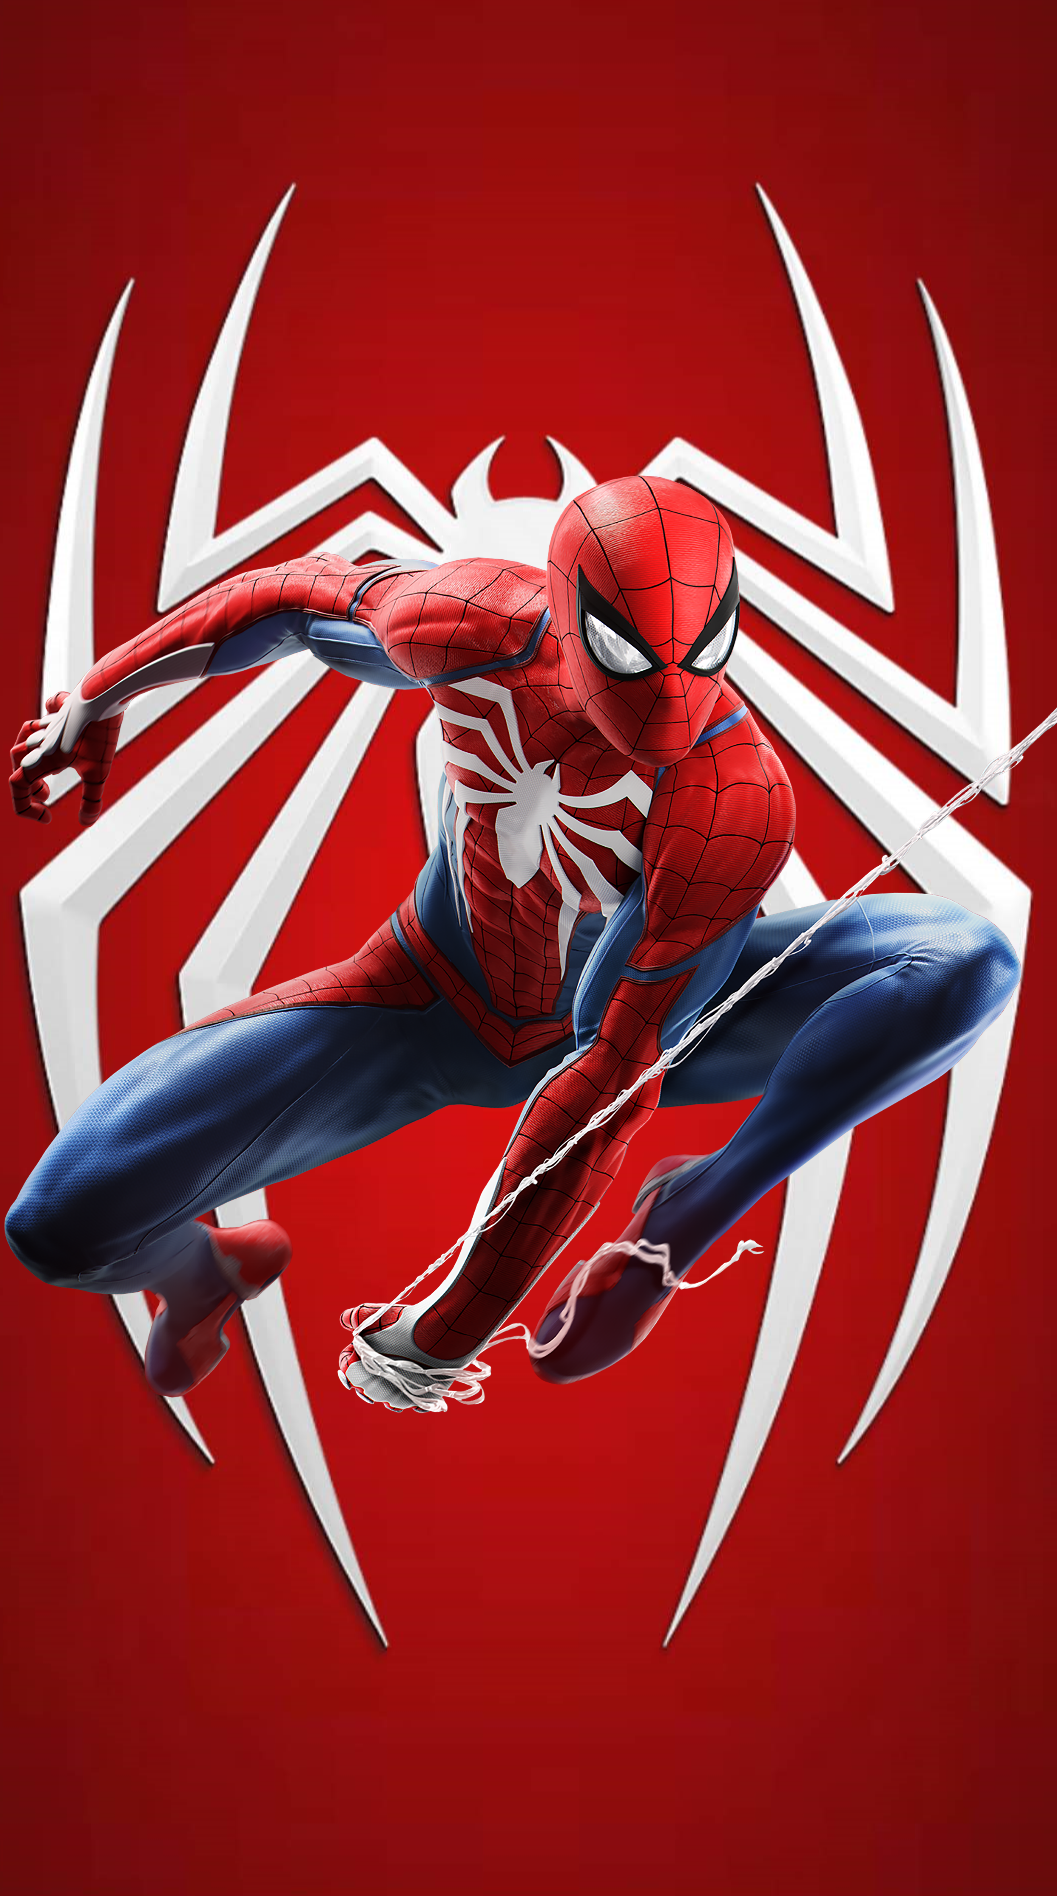 Spider Man Ps4 Mobile Wallpaper 1 By Crillyboy25 On Deviantart